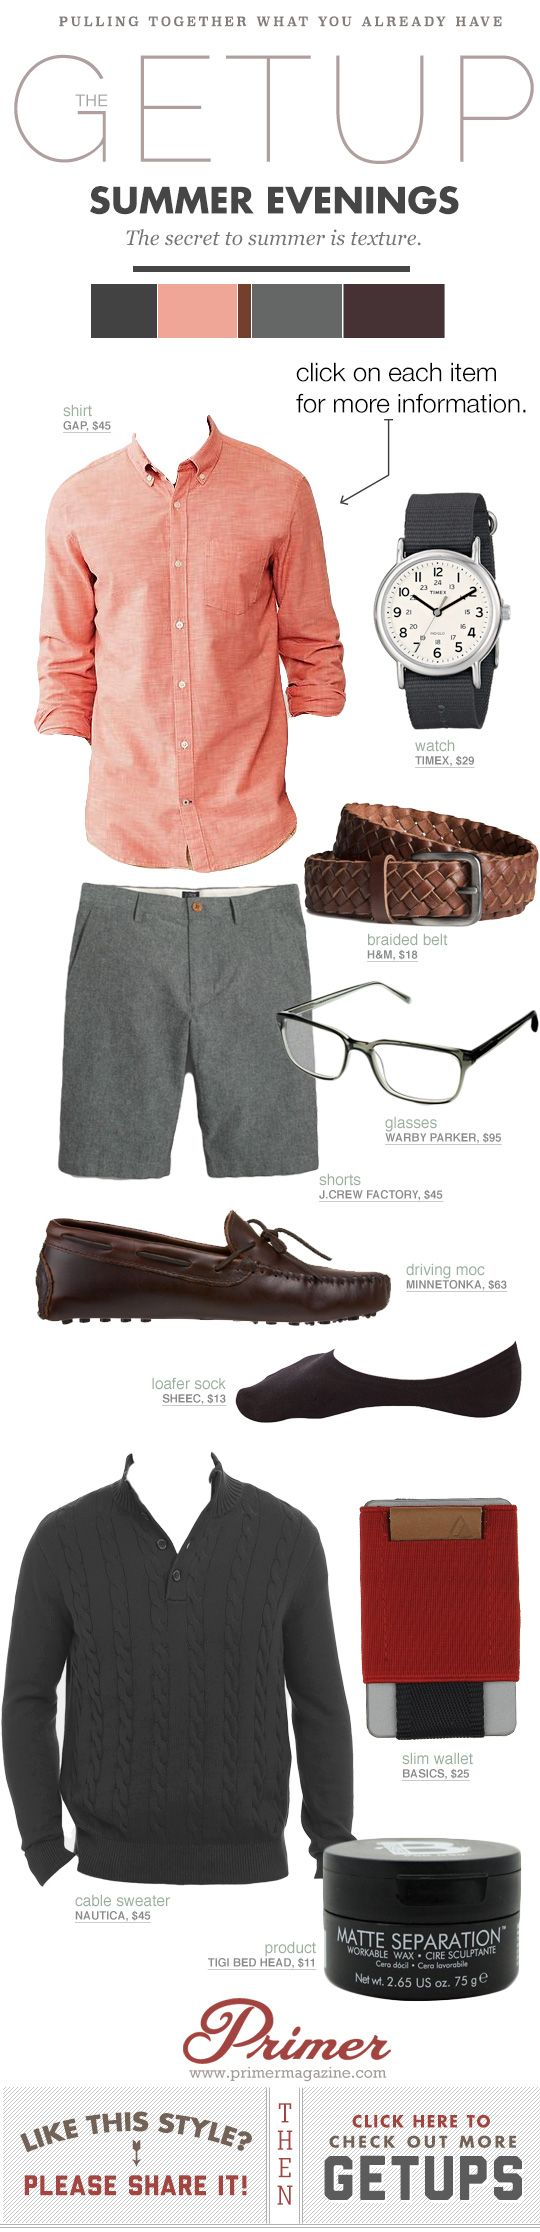 Summer Getup Week: Summer Evenings | Primer